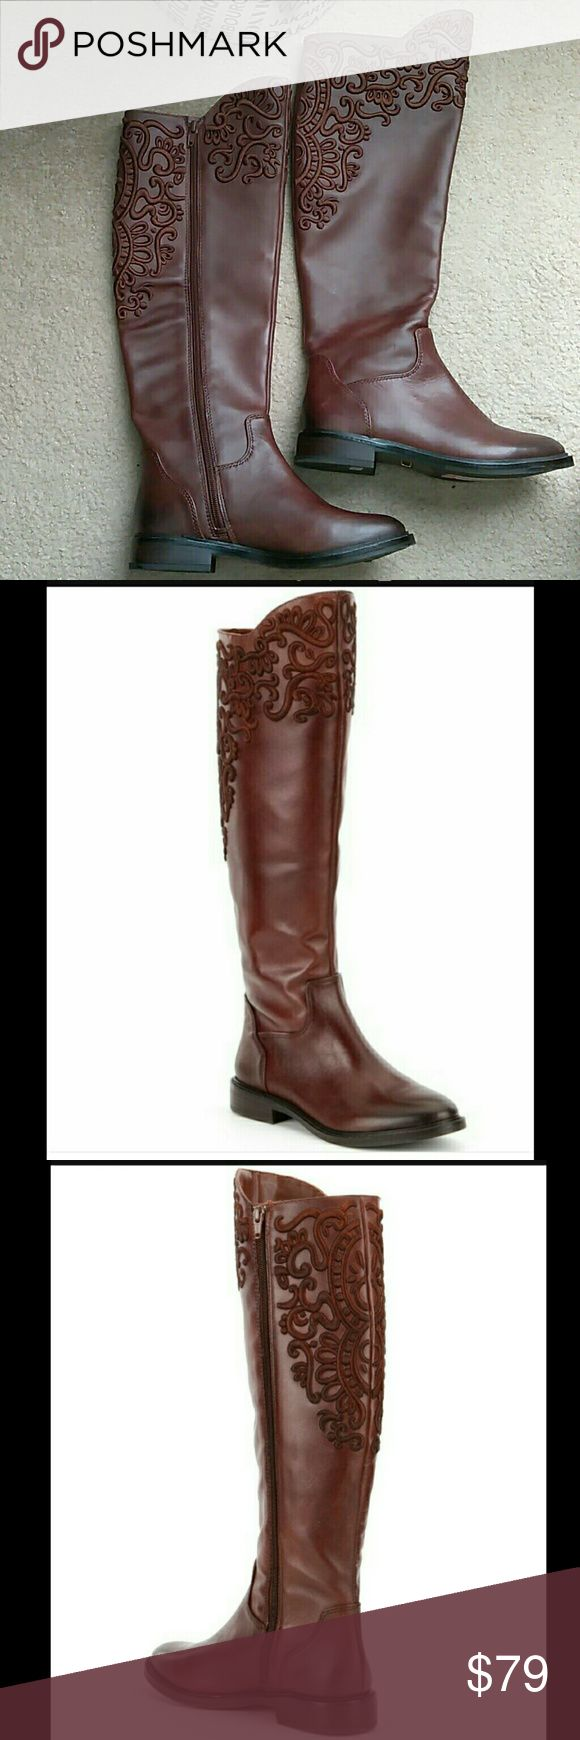 New Gianni Bini Brytt Leather Riding Boots New Gianni Bini Brytt Leather Riding Boots. Beautifully Embroidered all around. Inner side zipper, top to bottom. Gianni Bini Shoes